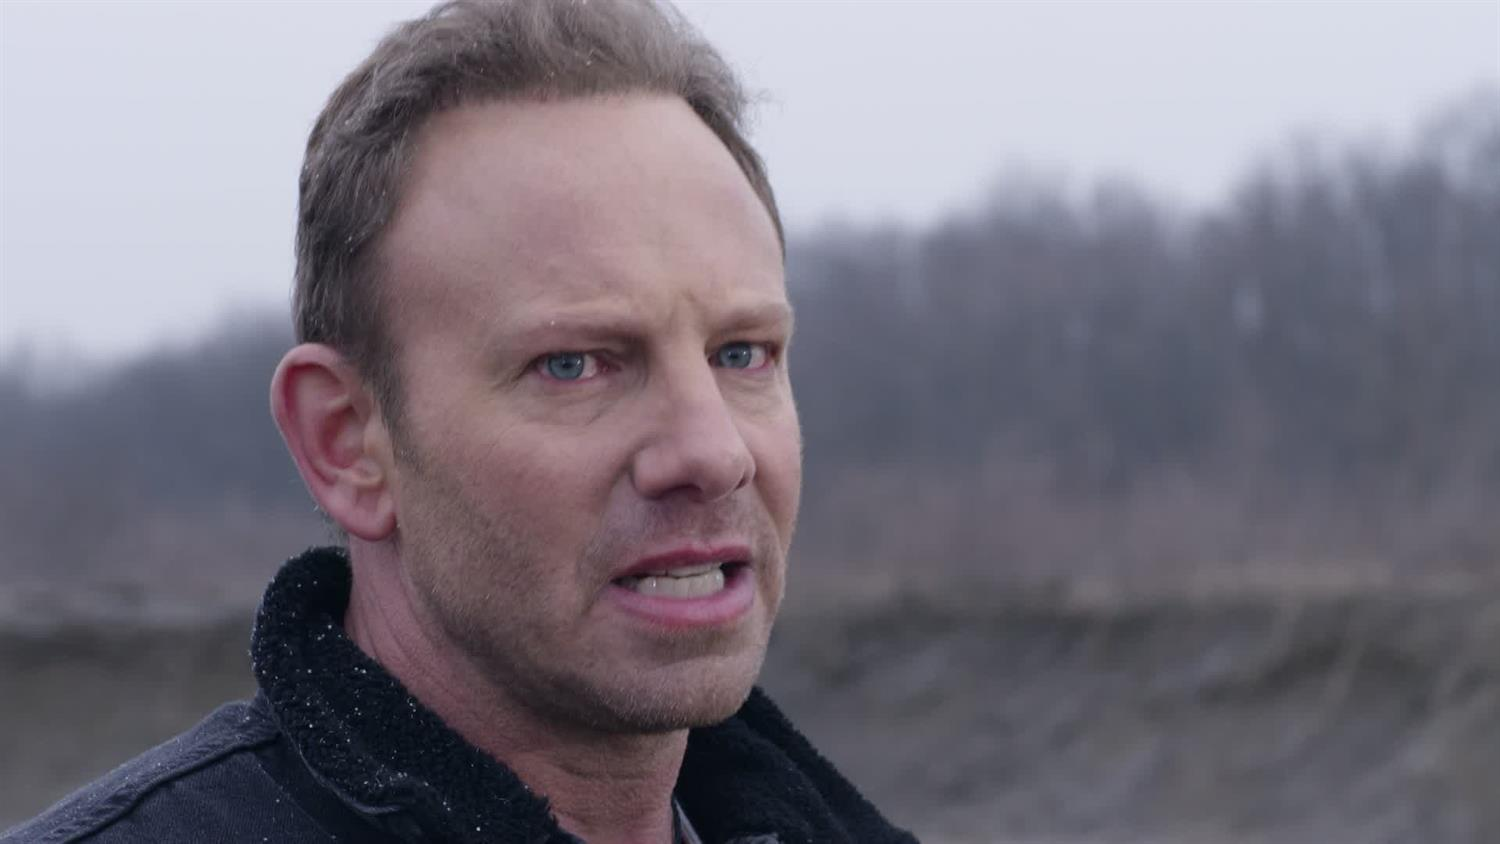 The Last Sharknado: It's About Time - Tease